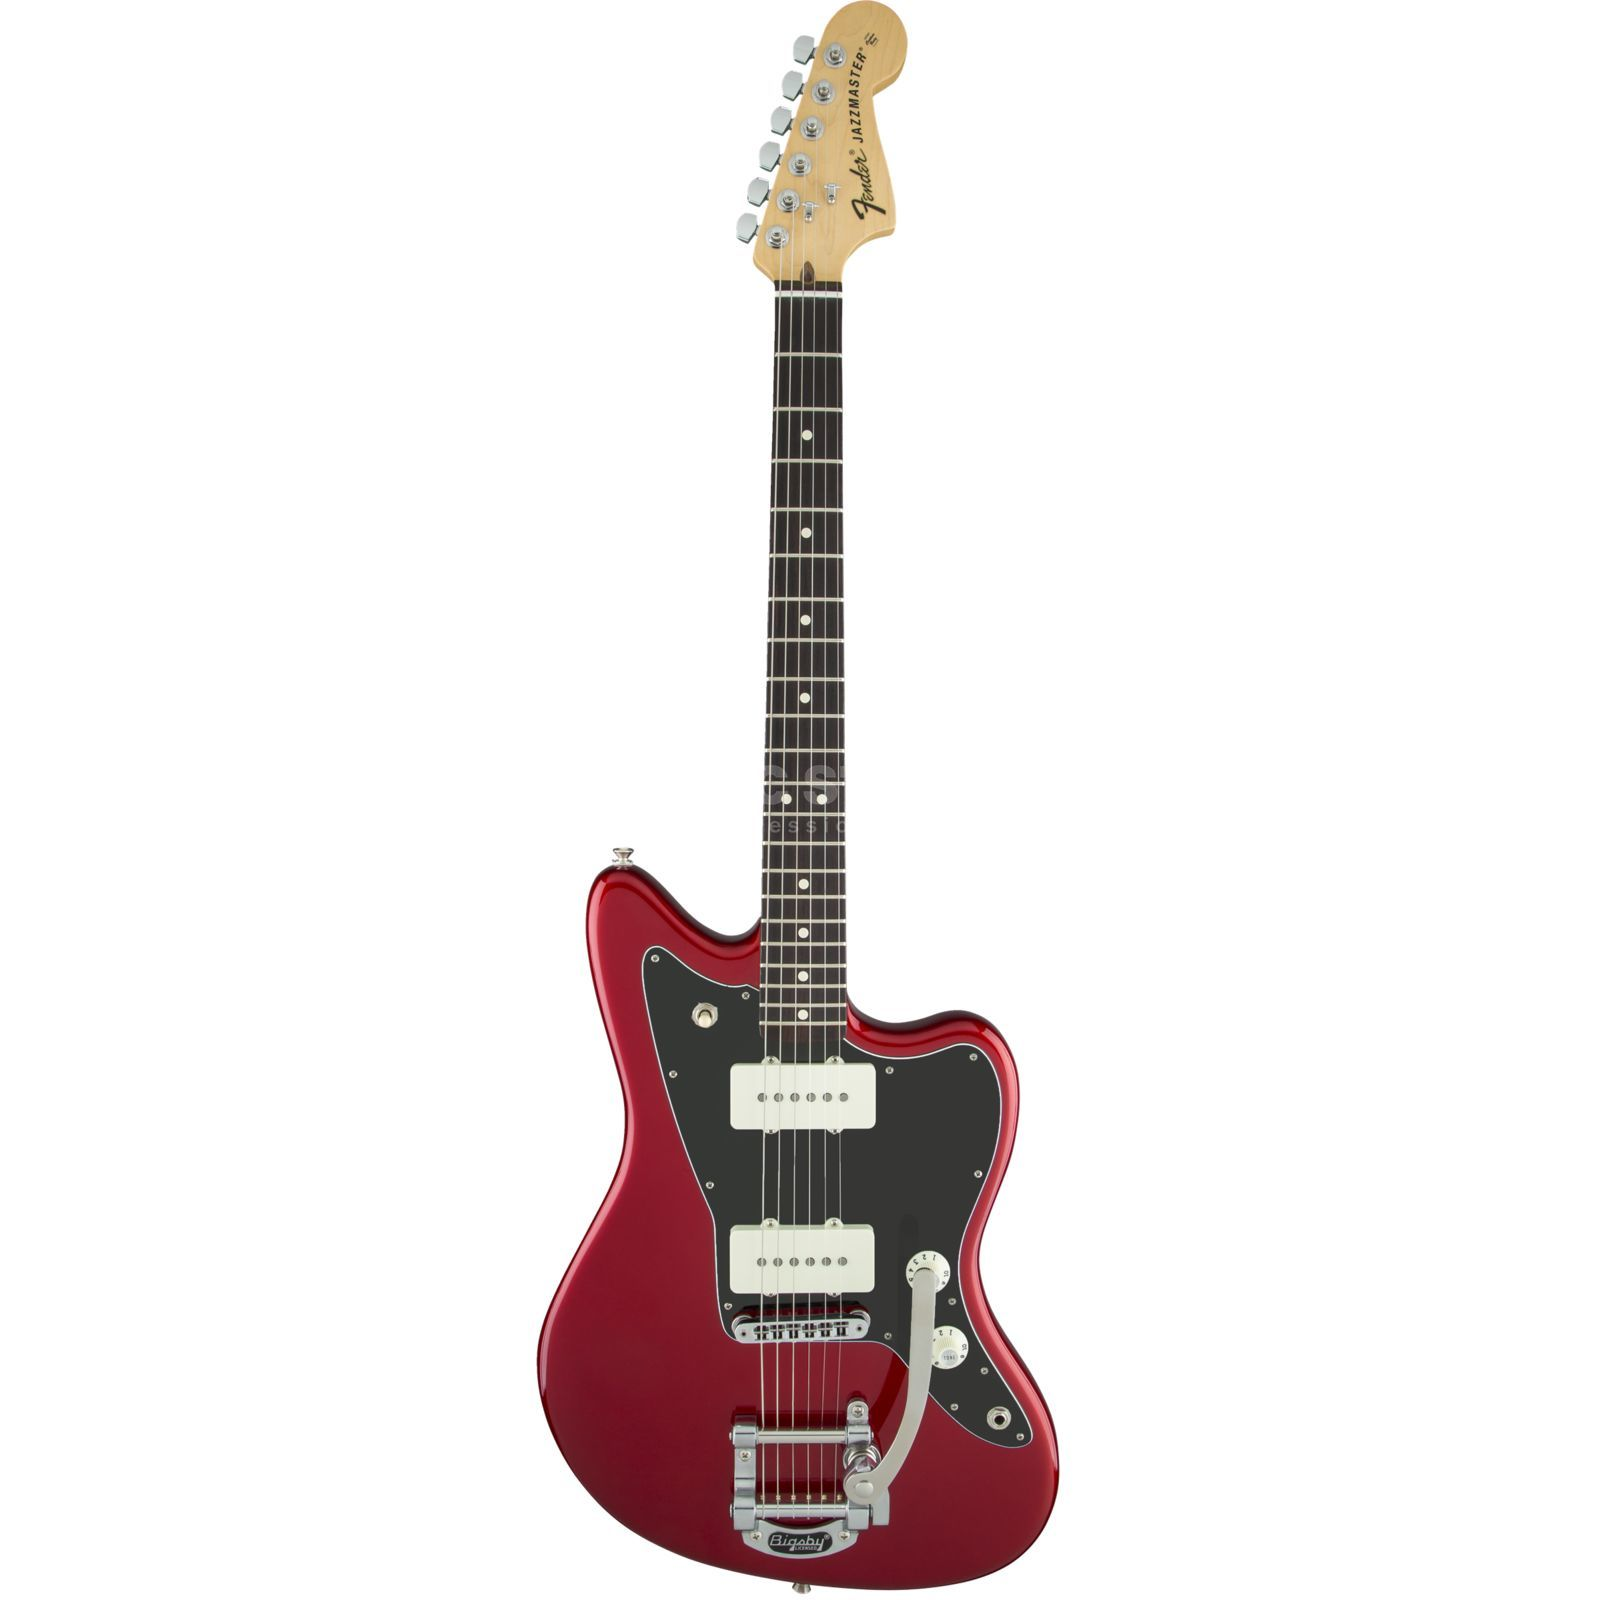 Fender Magnificent 7 American Special Jazzmaster Bigsby Candy Apple Red Produktbild